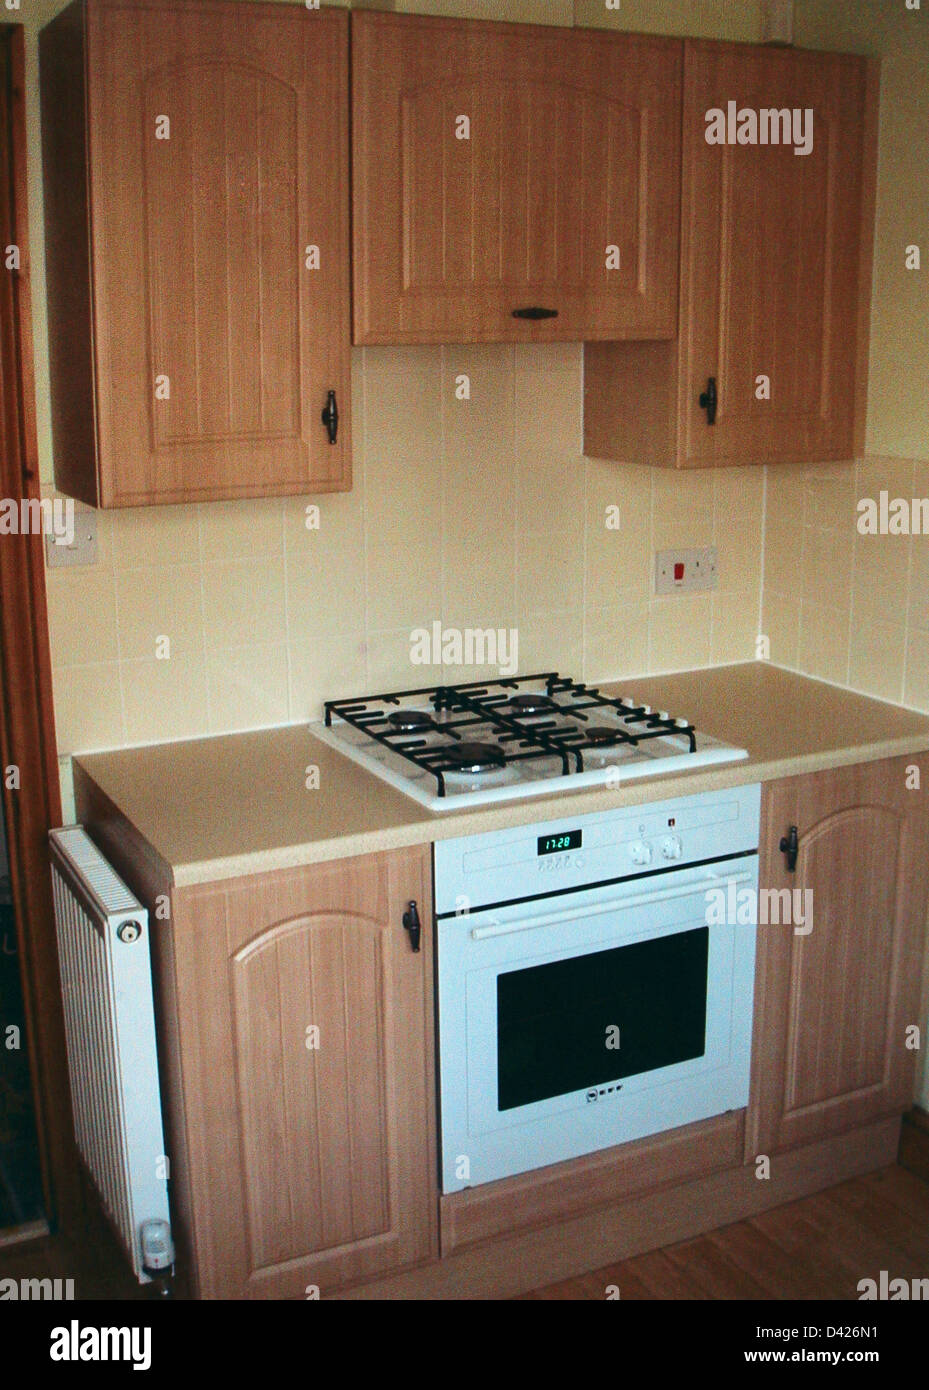 White built in oven and hob